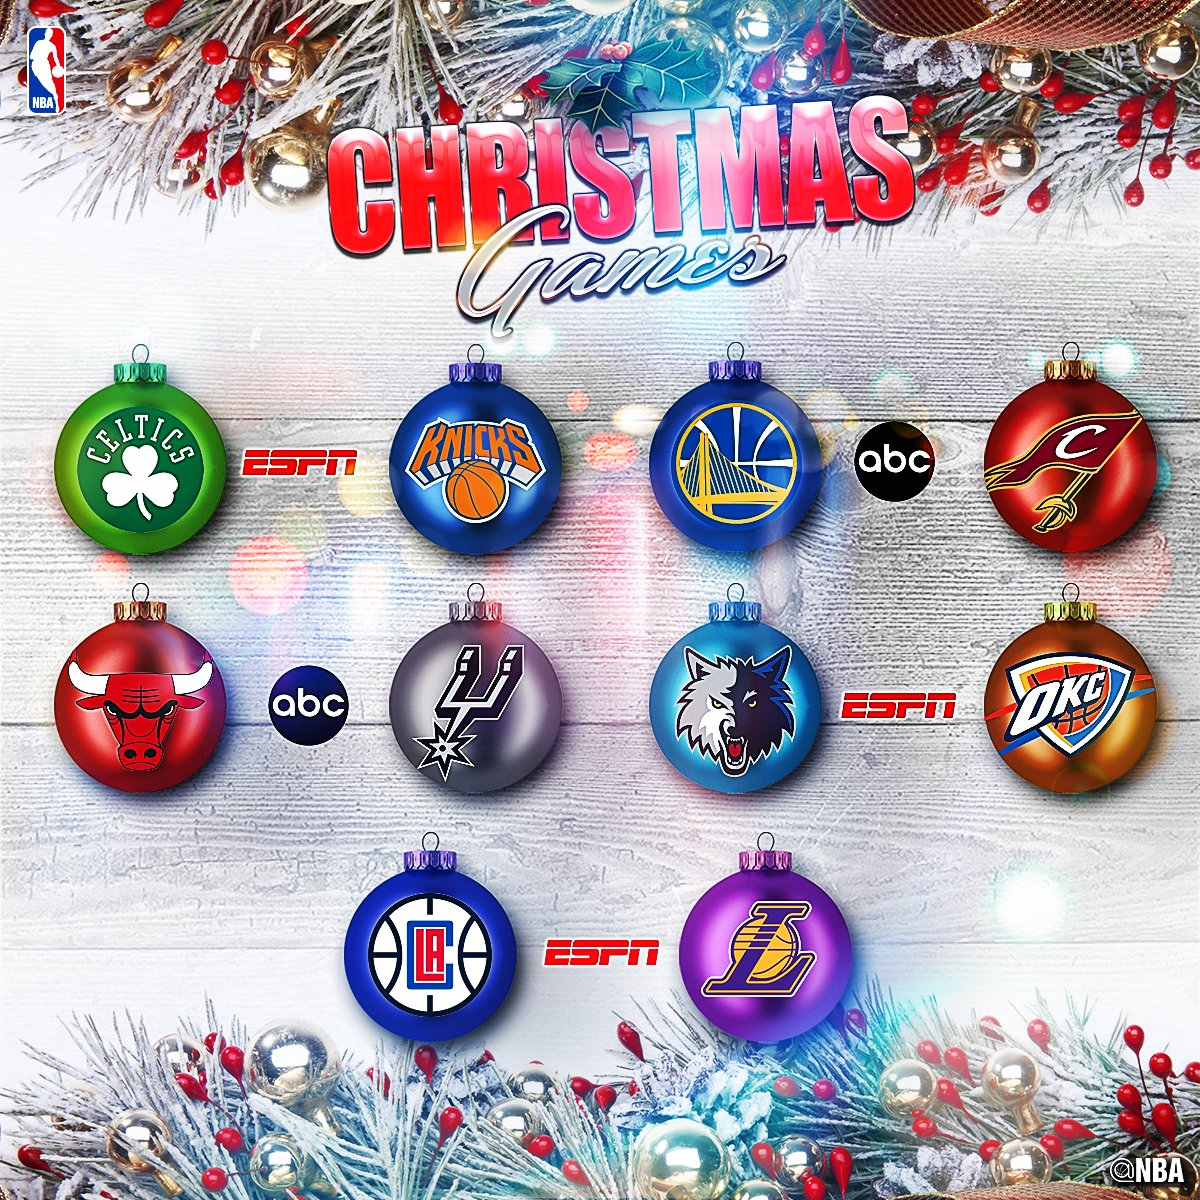 Nba Christmas Day Schedule.Nba Schedule Bleacher Report Latest News Videos And